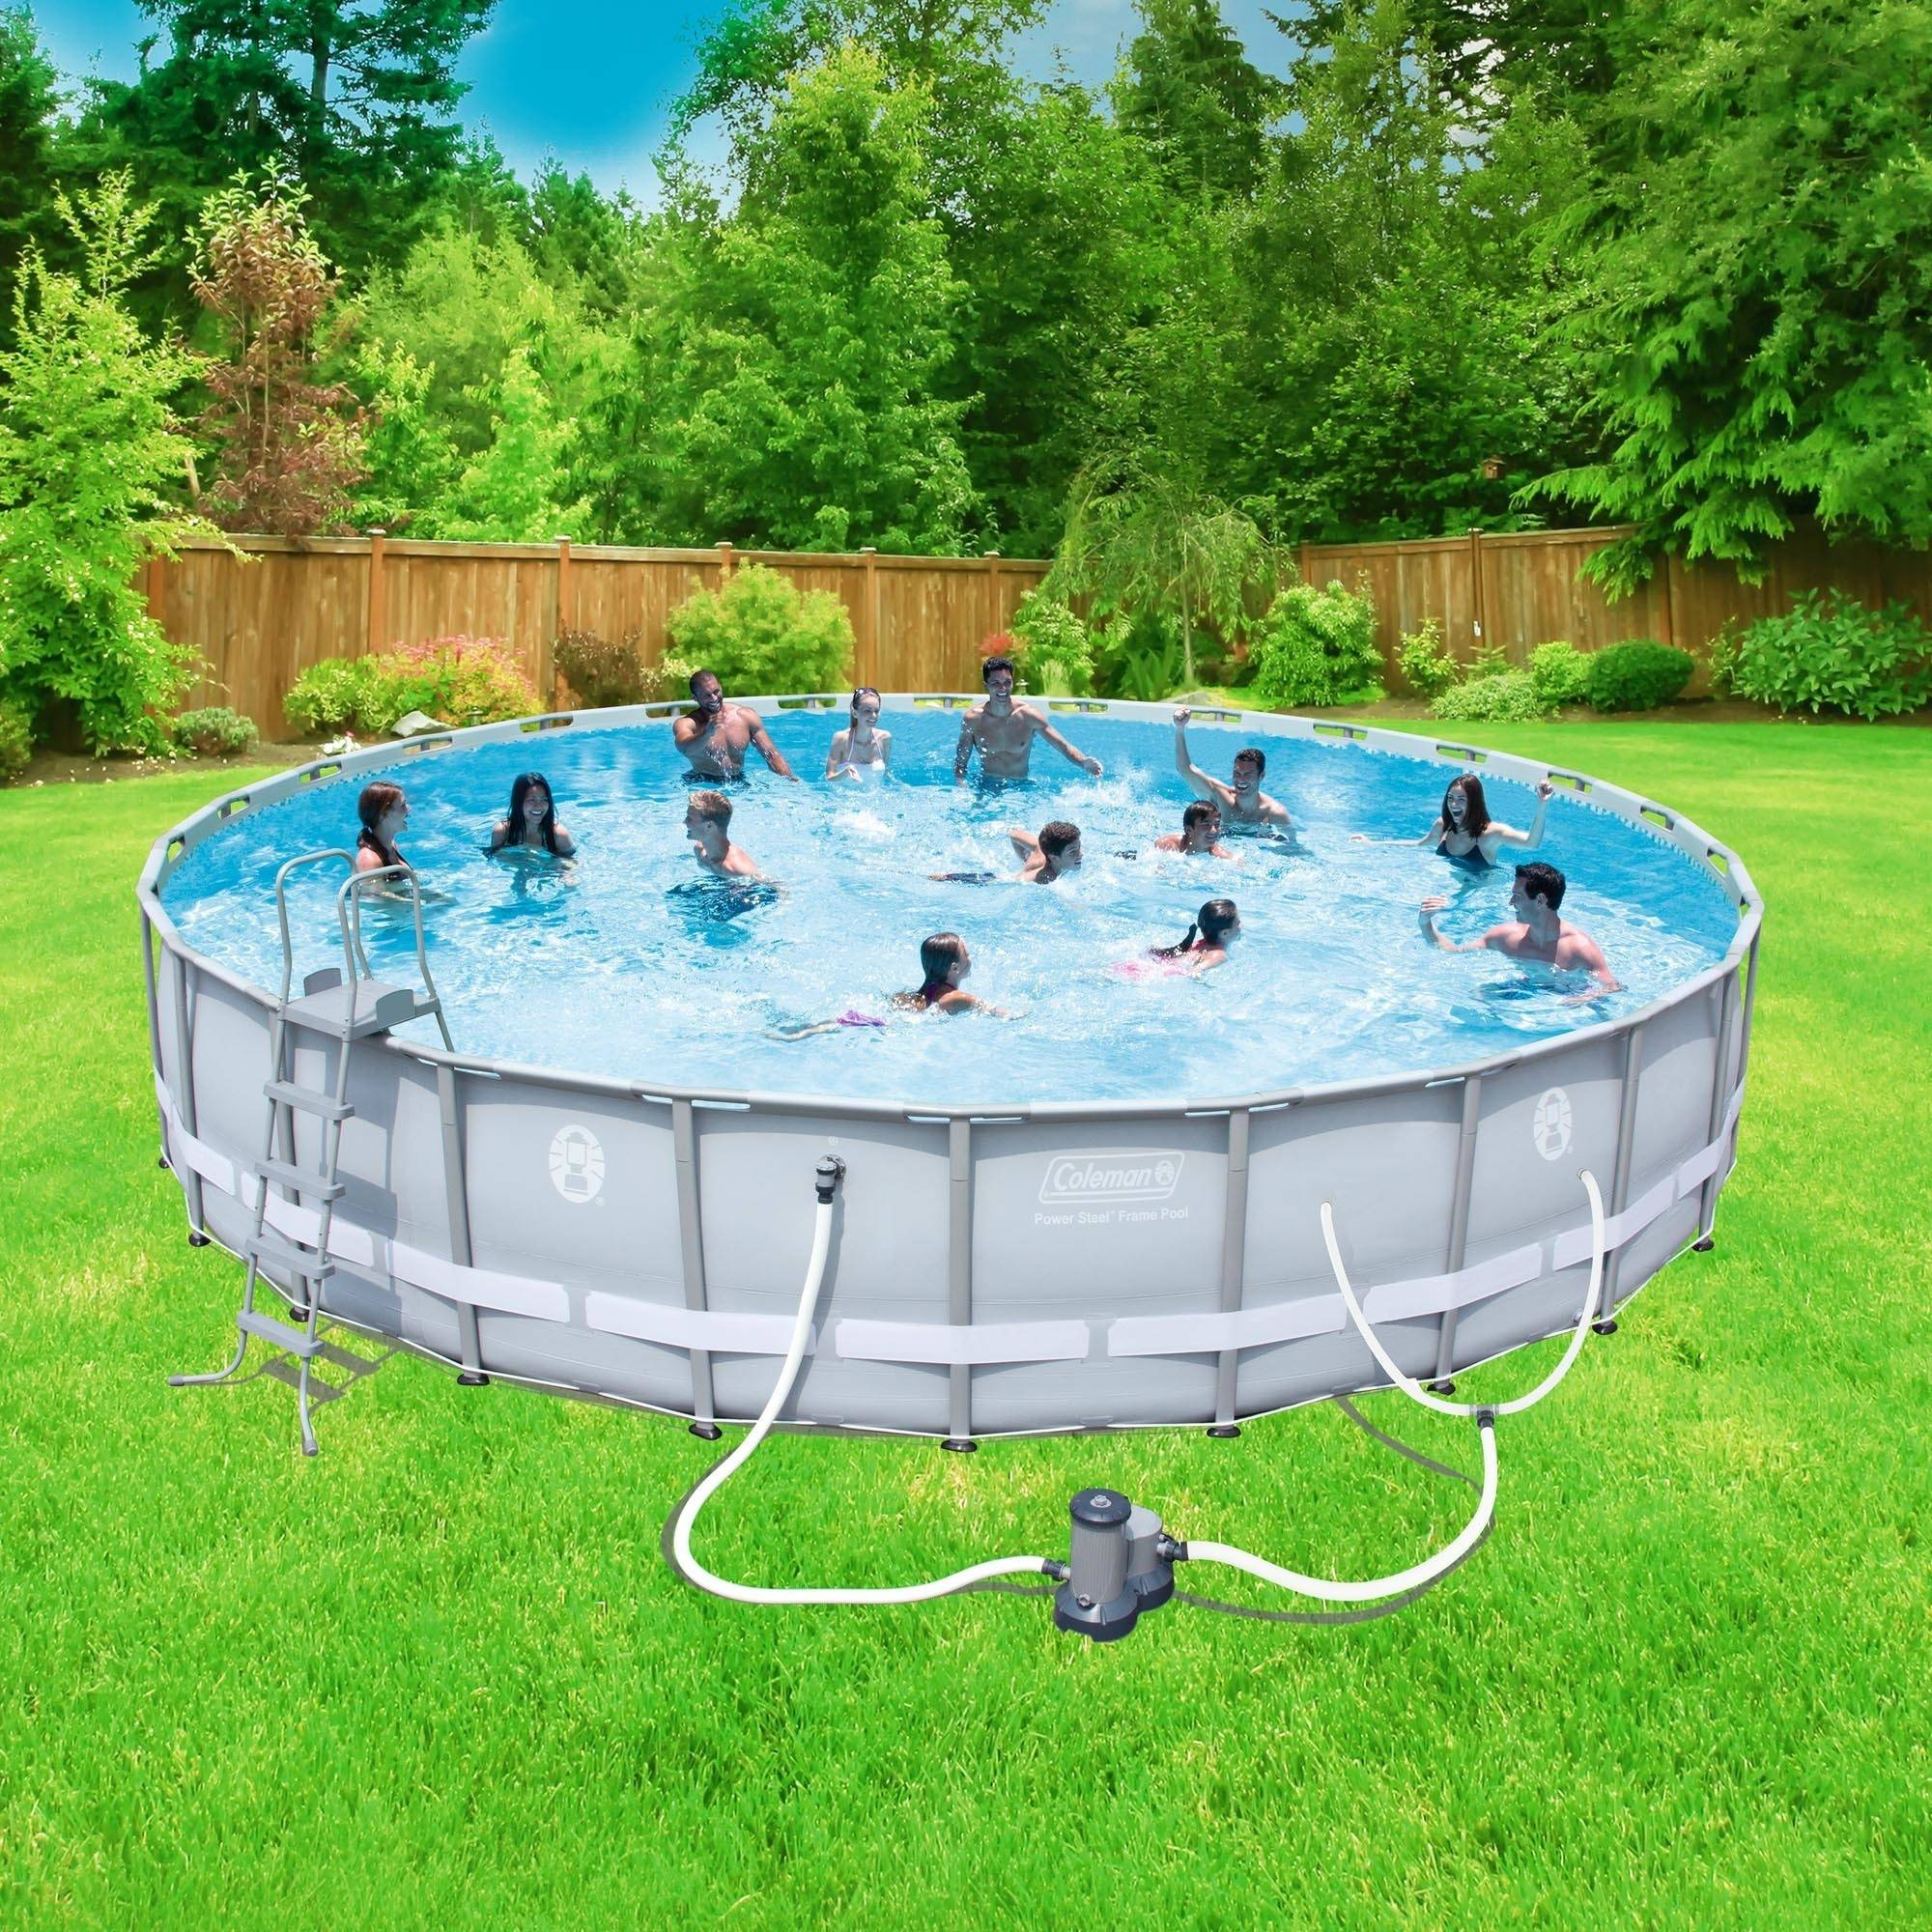 Coleman power steel 26 39 x 52 frame swimming pool set for Swimming pool set angebot